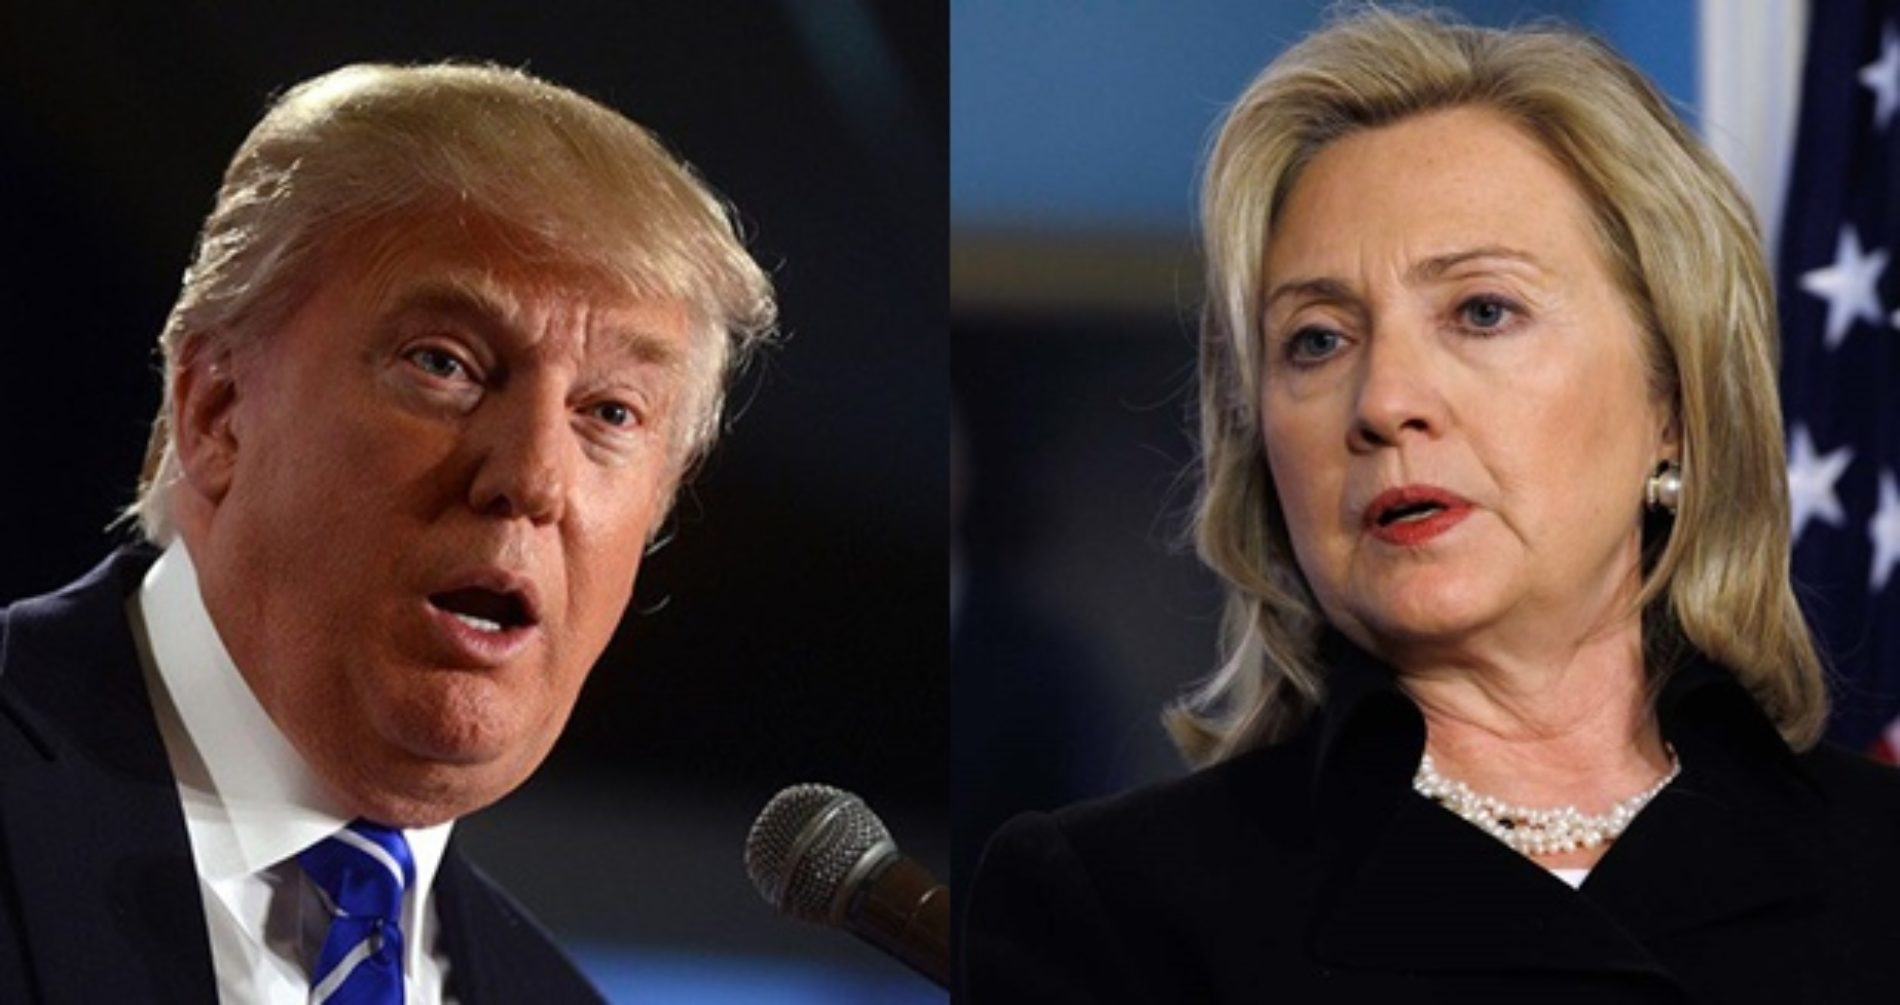 Donald Trump says Hillary Clinton victory will lead to mass murder of gays